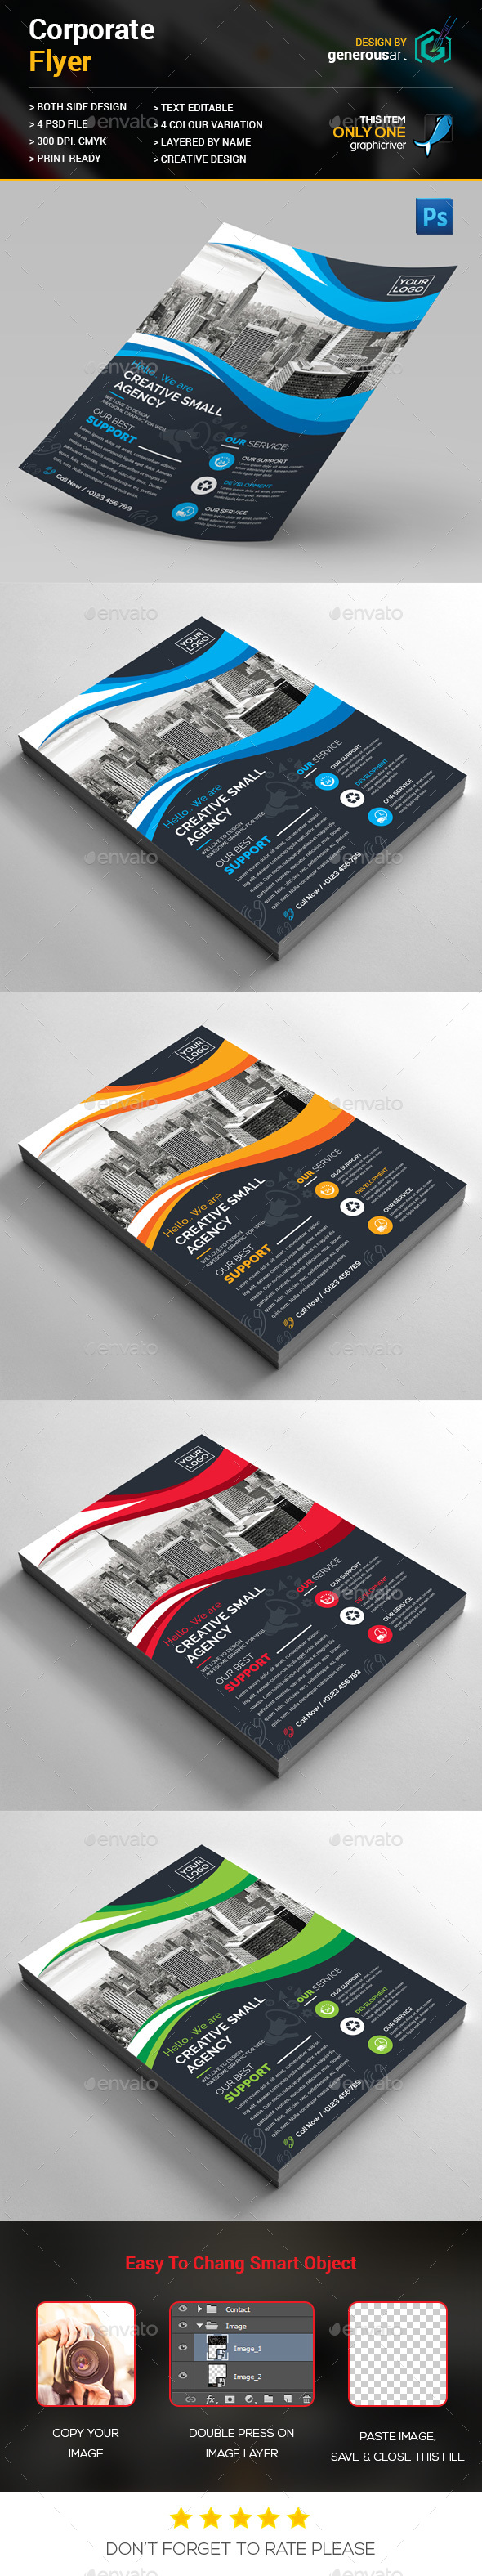 One Side Corporate Flyer - Corporate Flyers